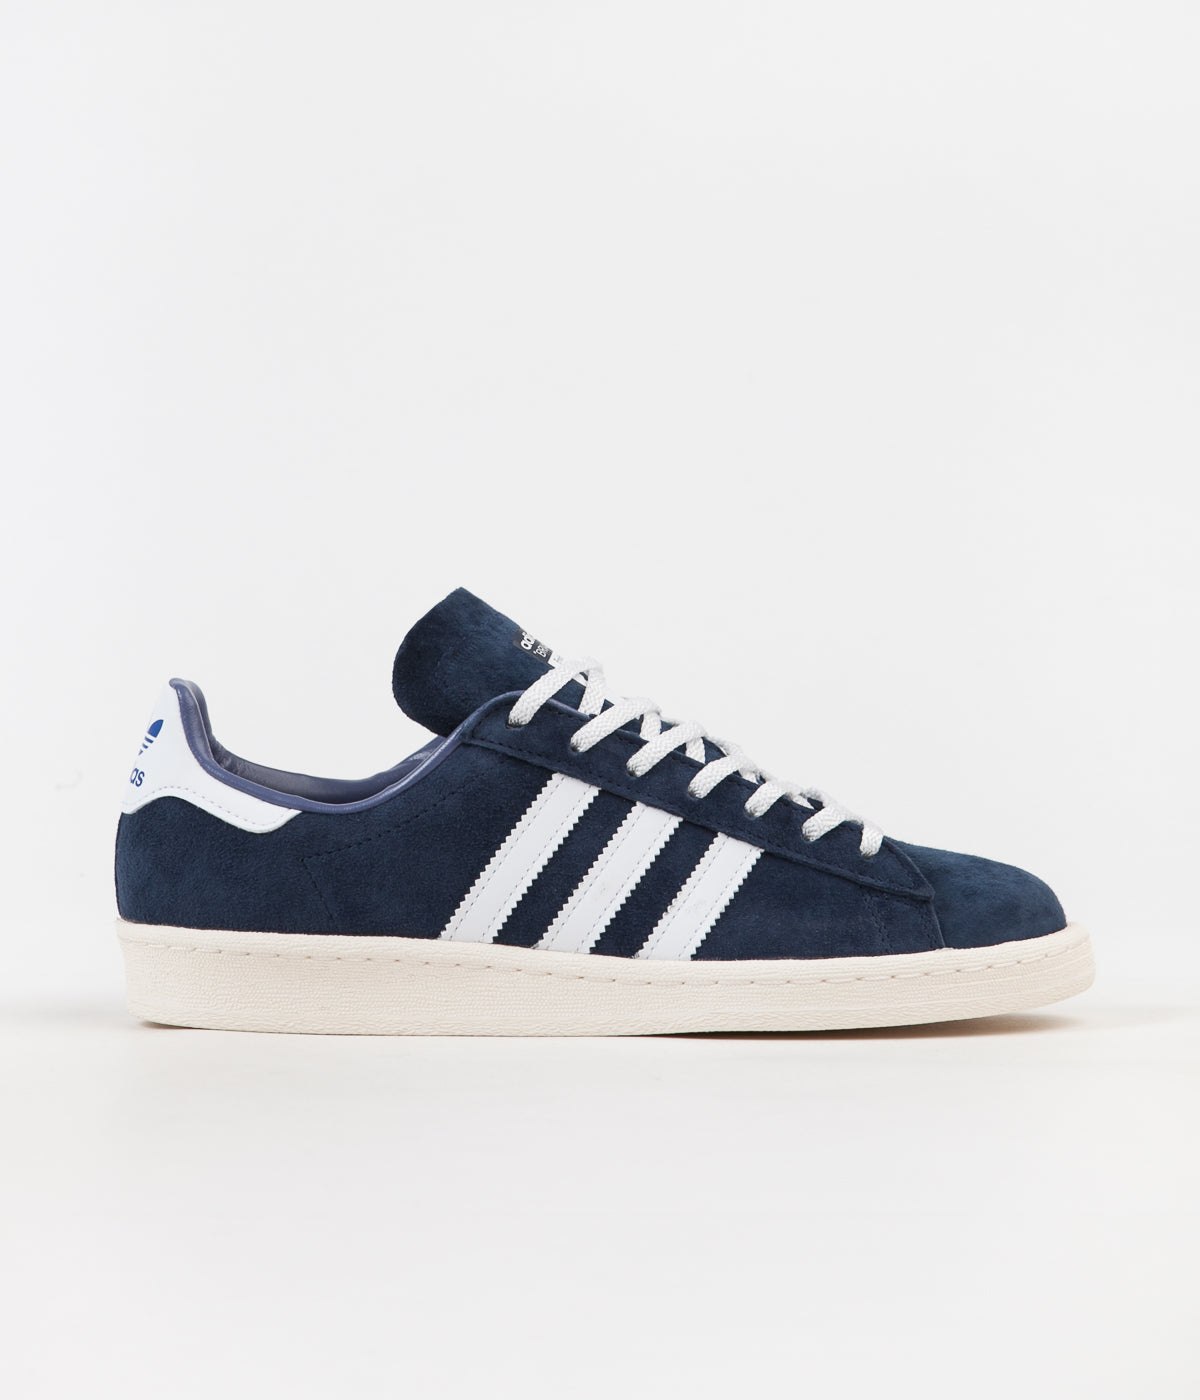 ade67023f40e Adidas x Brian Lotti Campus 80 s  Respect Your Roots  Shoes - Collegiate  Navy   FTW White   Core White